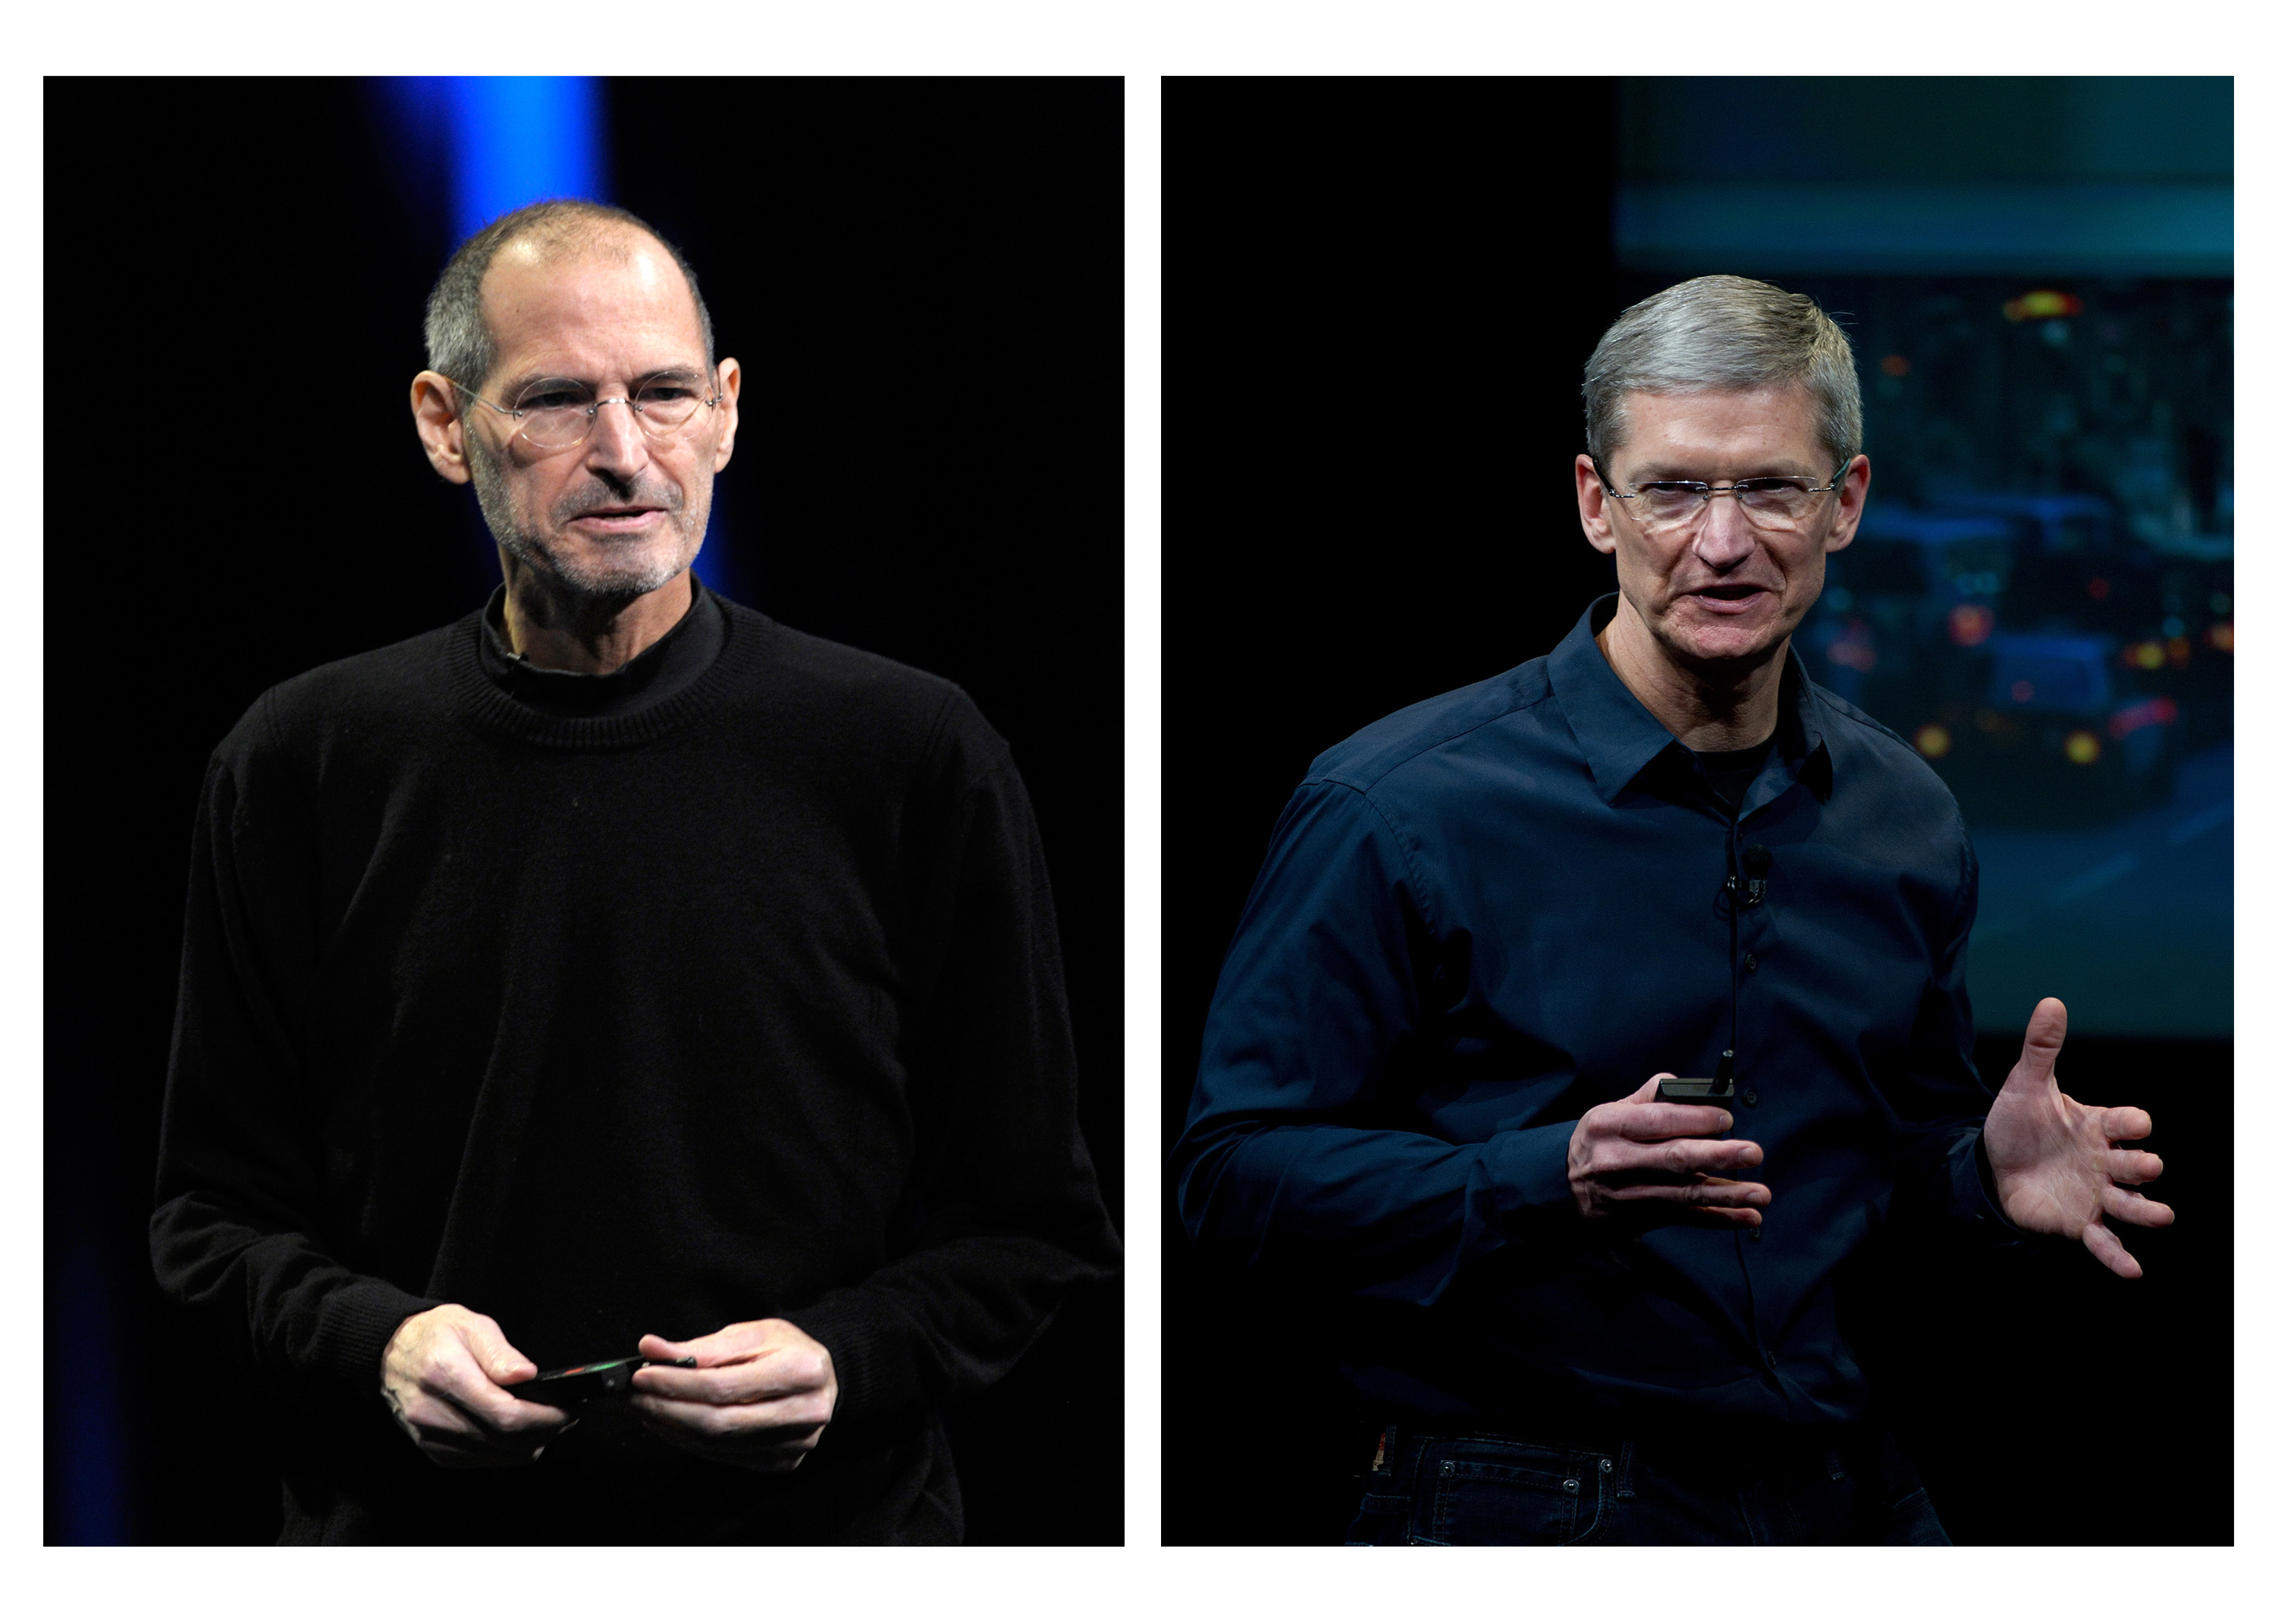 In this combination photo, Steve Jobs, former chief executive officer of Apple, left, unveils the iCloud storage system in San Francisco on June 6, 2011, while his successor Tim Cook speaks during an event at the company's headquarters in Cupertino, Calif., on Oct. 4, 2011